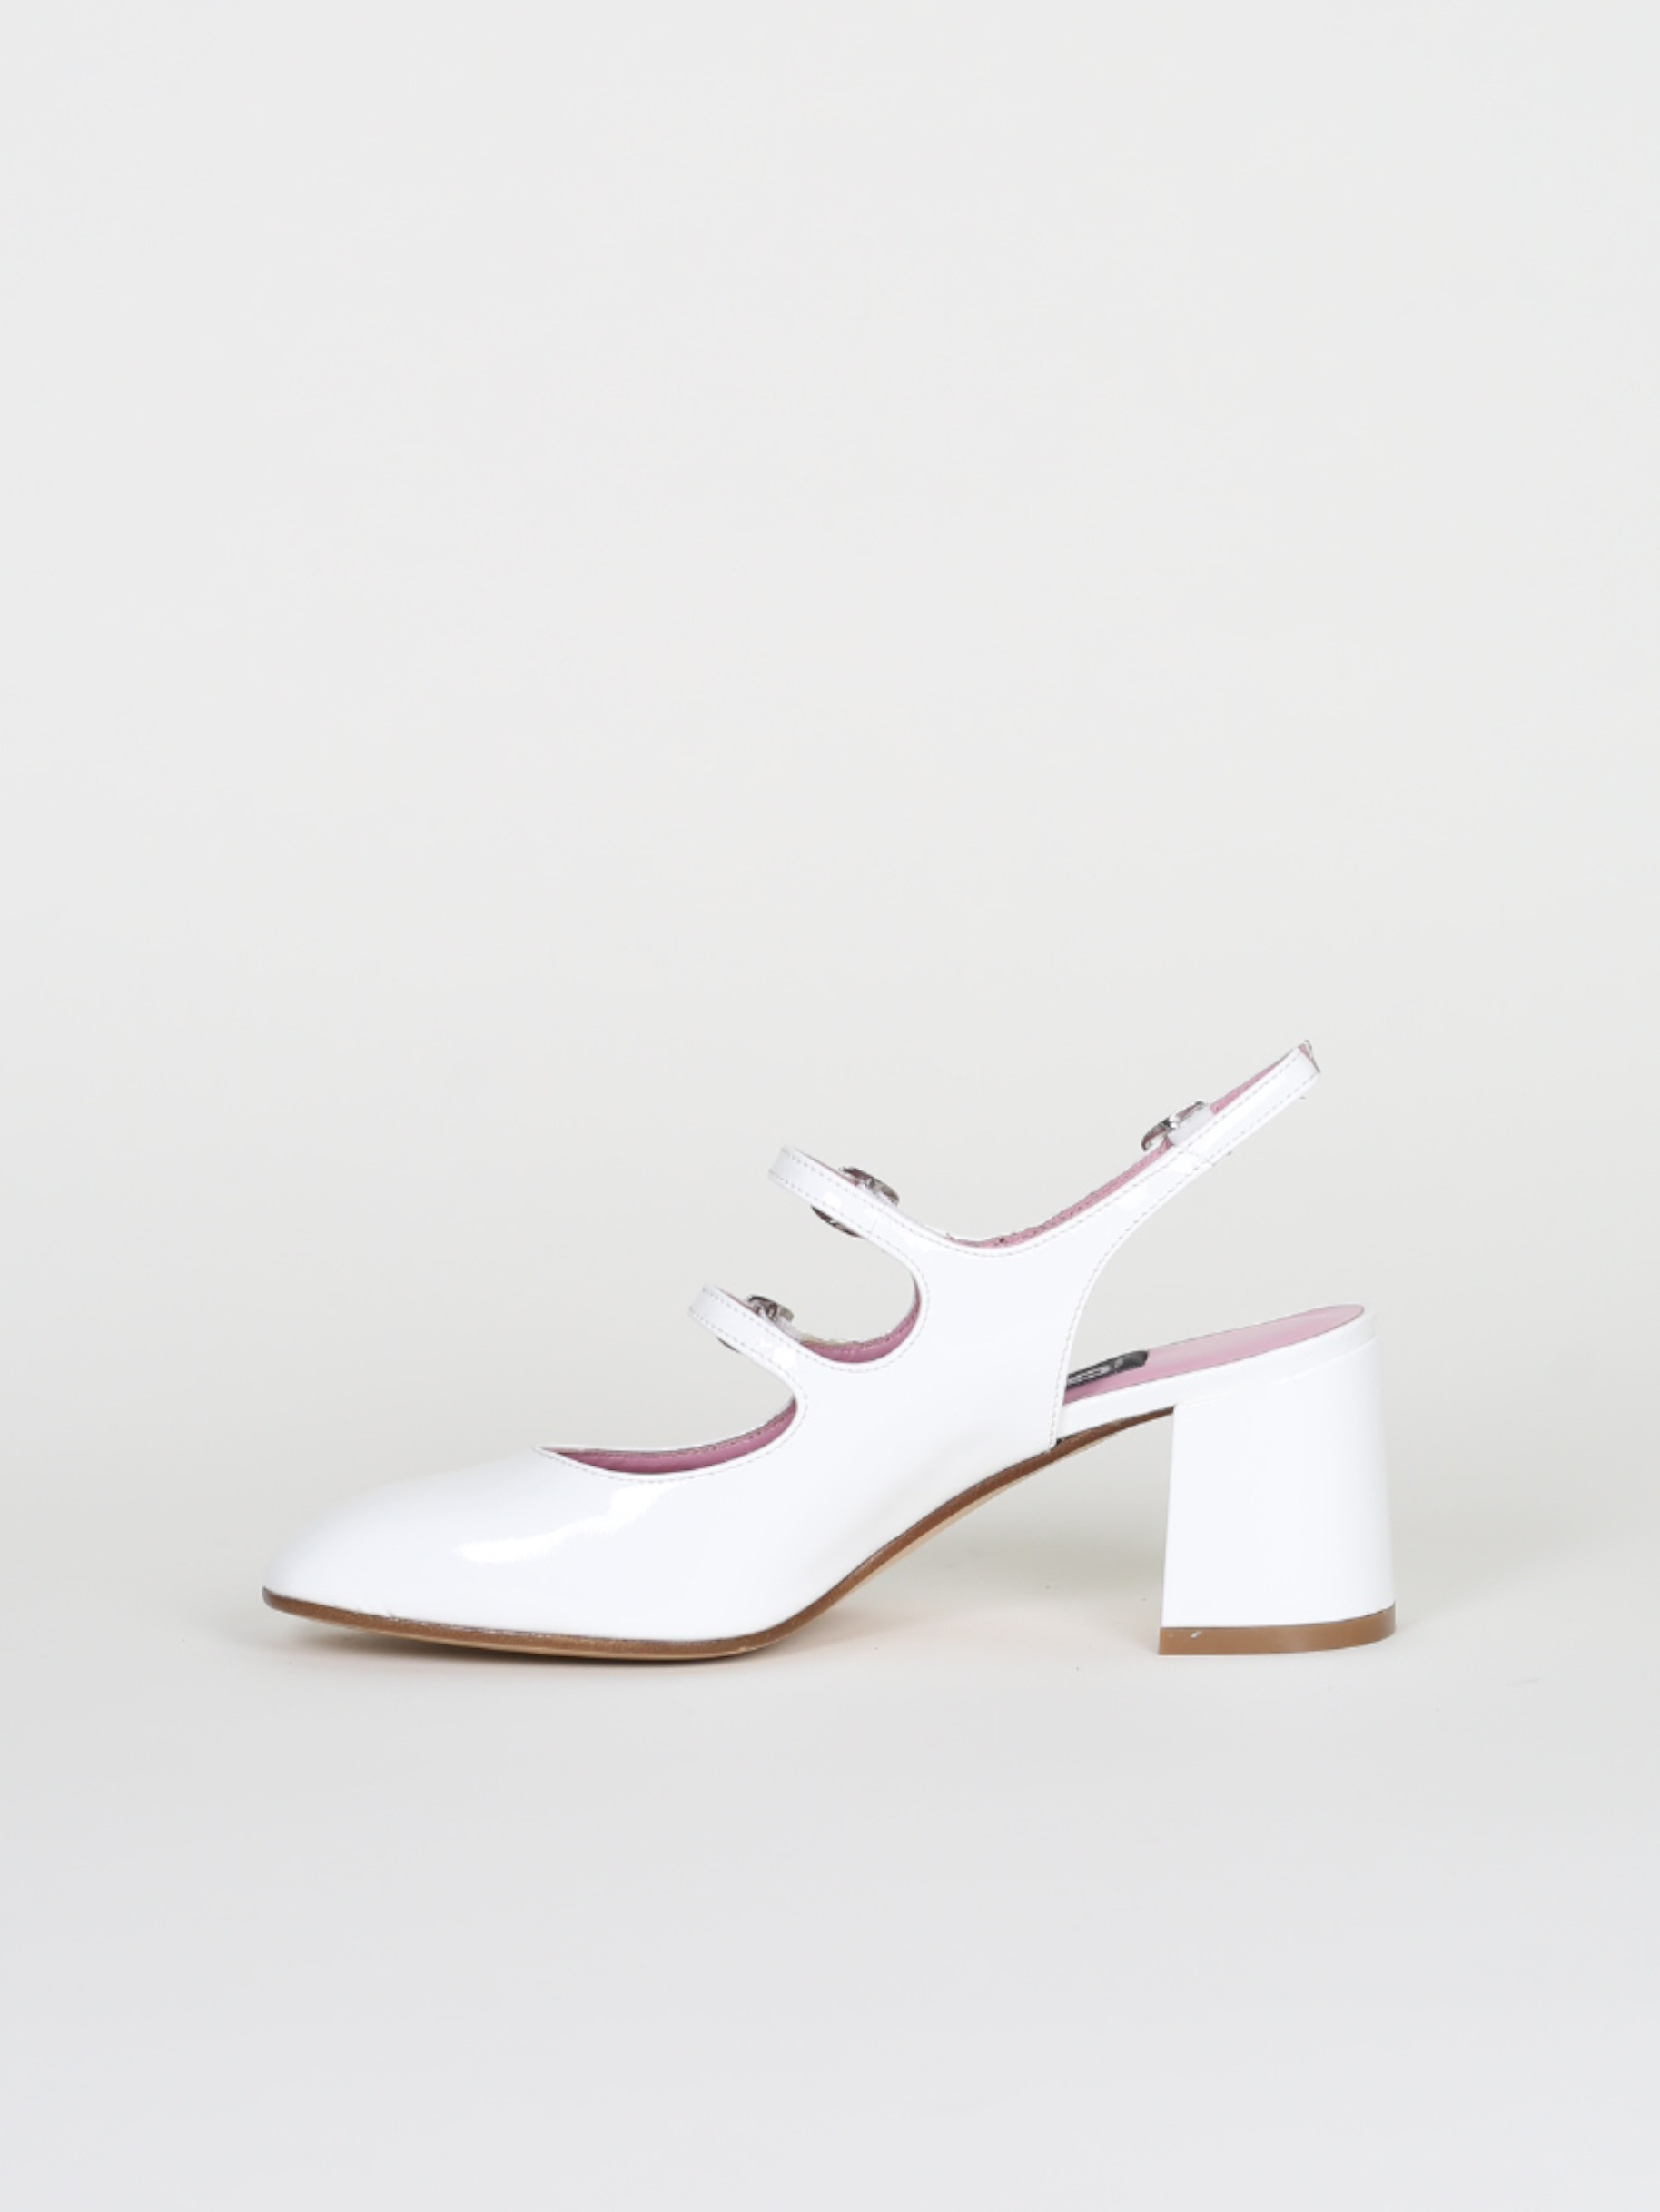 White patent leather mary janes